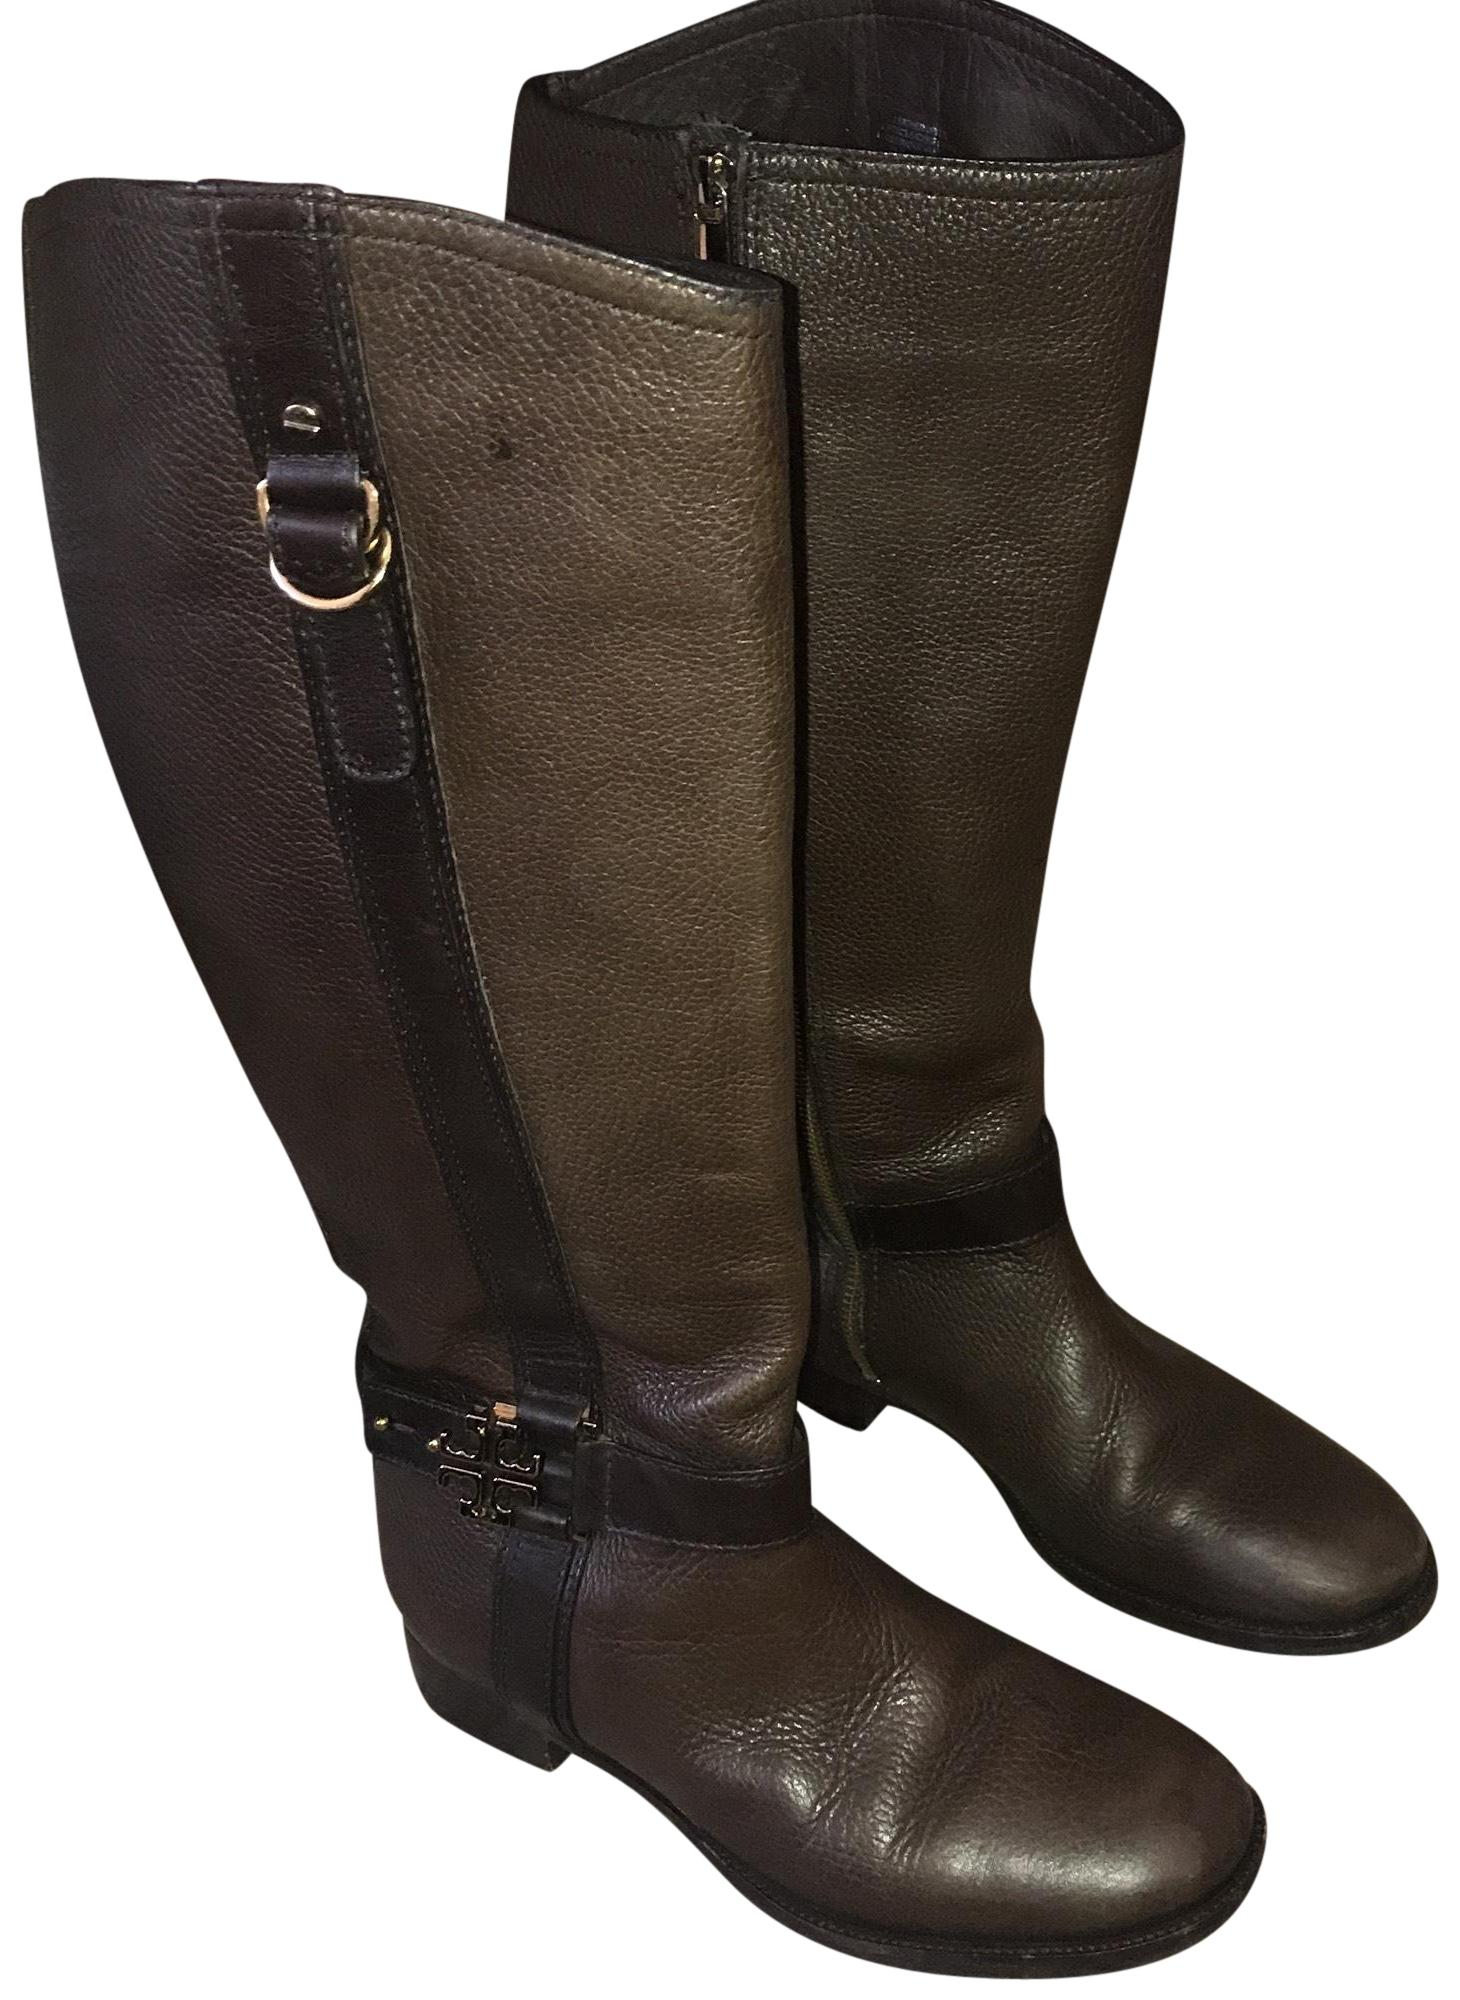 8efb2a2342209 low cost tory burch flannel riding boots 7484c 53721